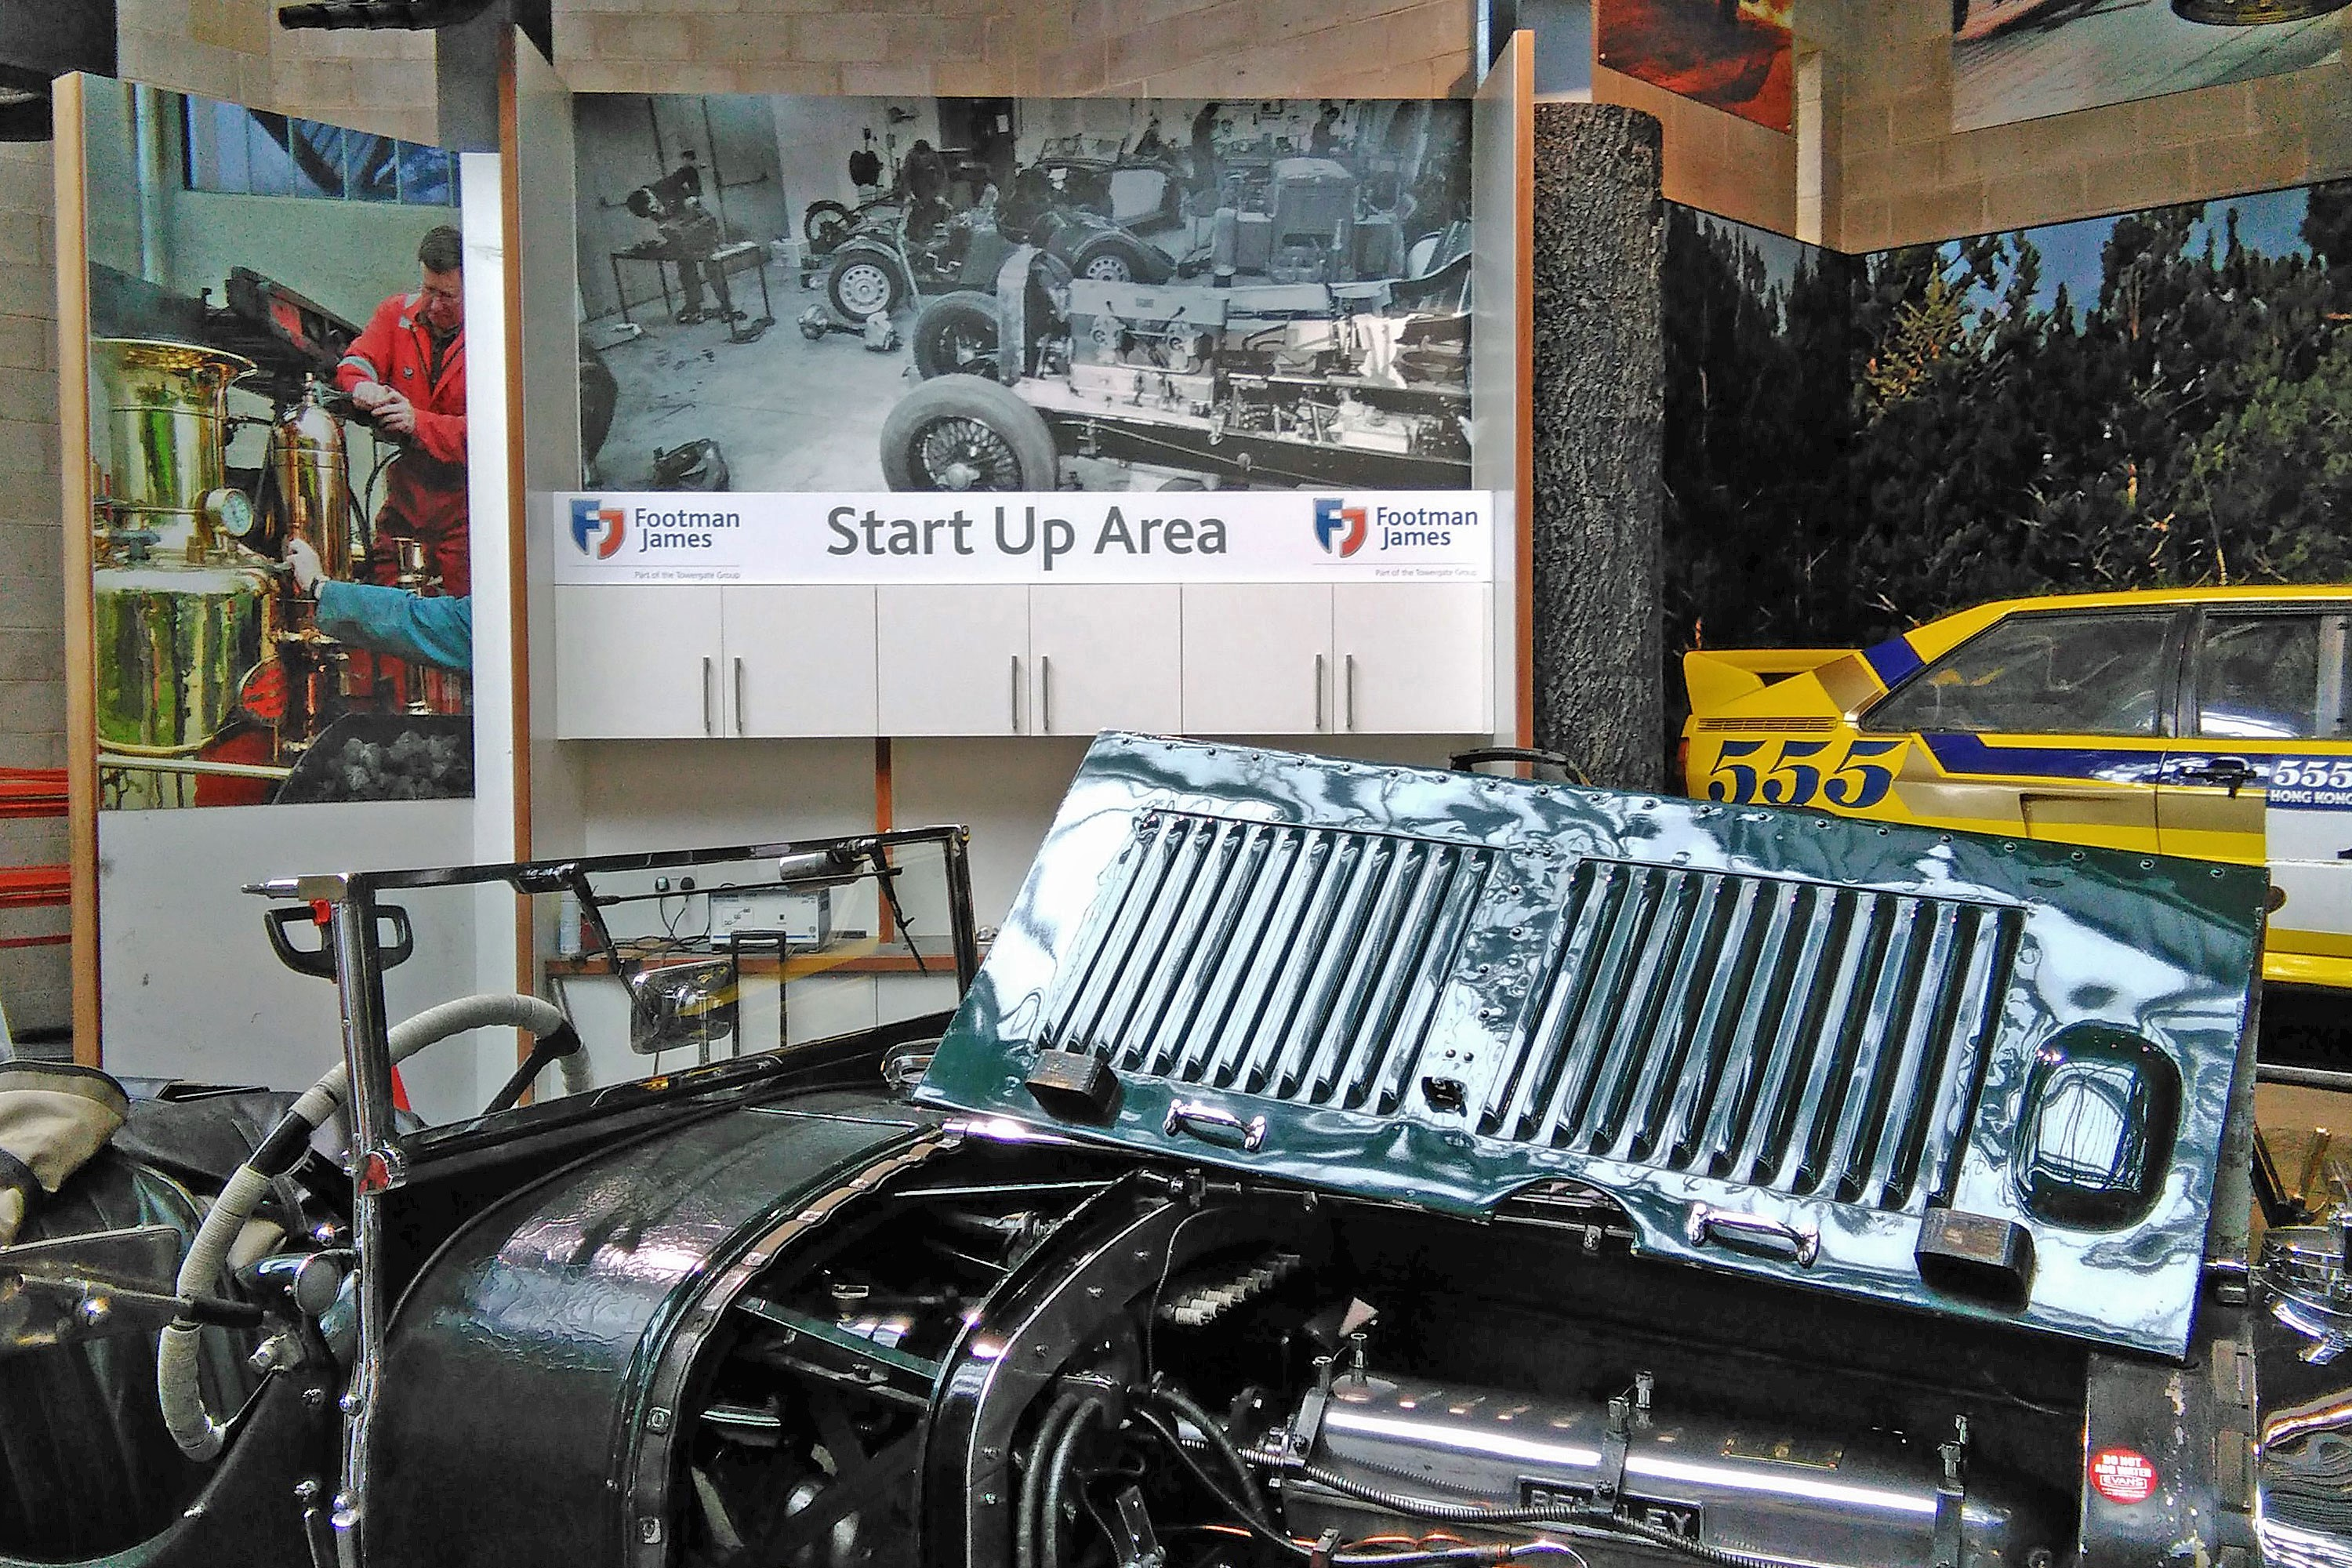 Start up area in the National Motor Museum with 1930 Bentley in foreground